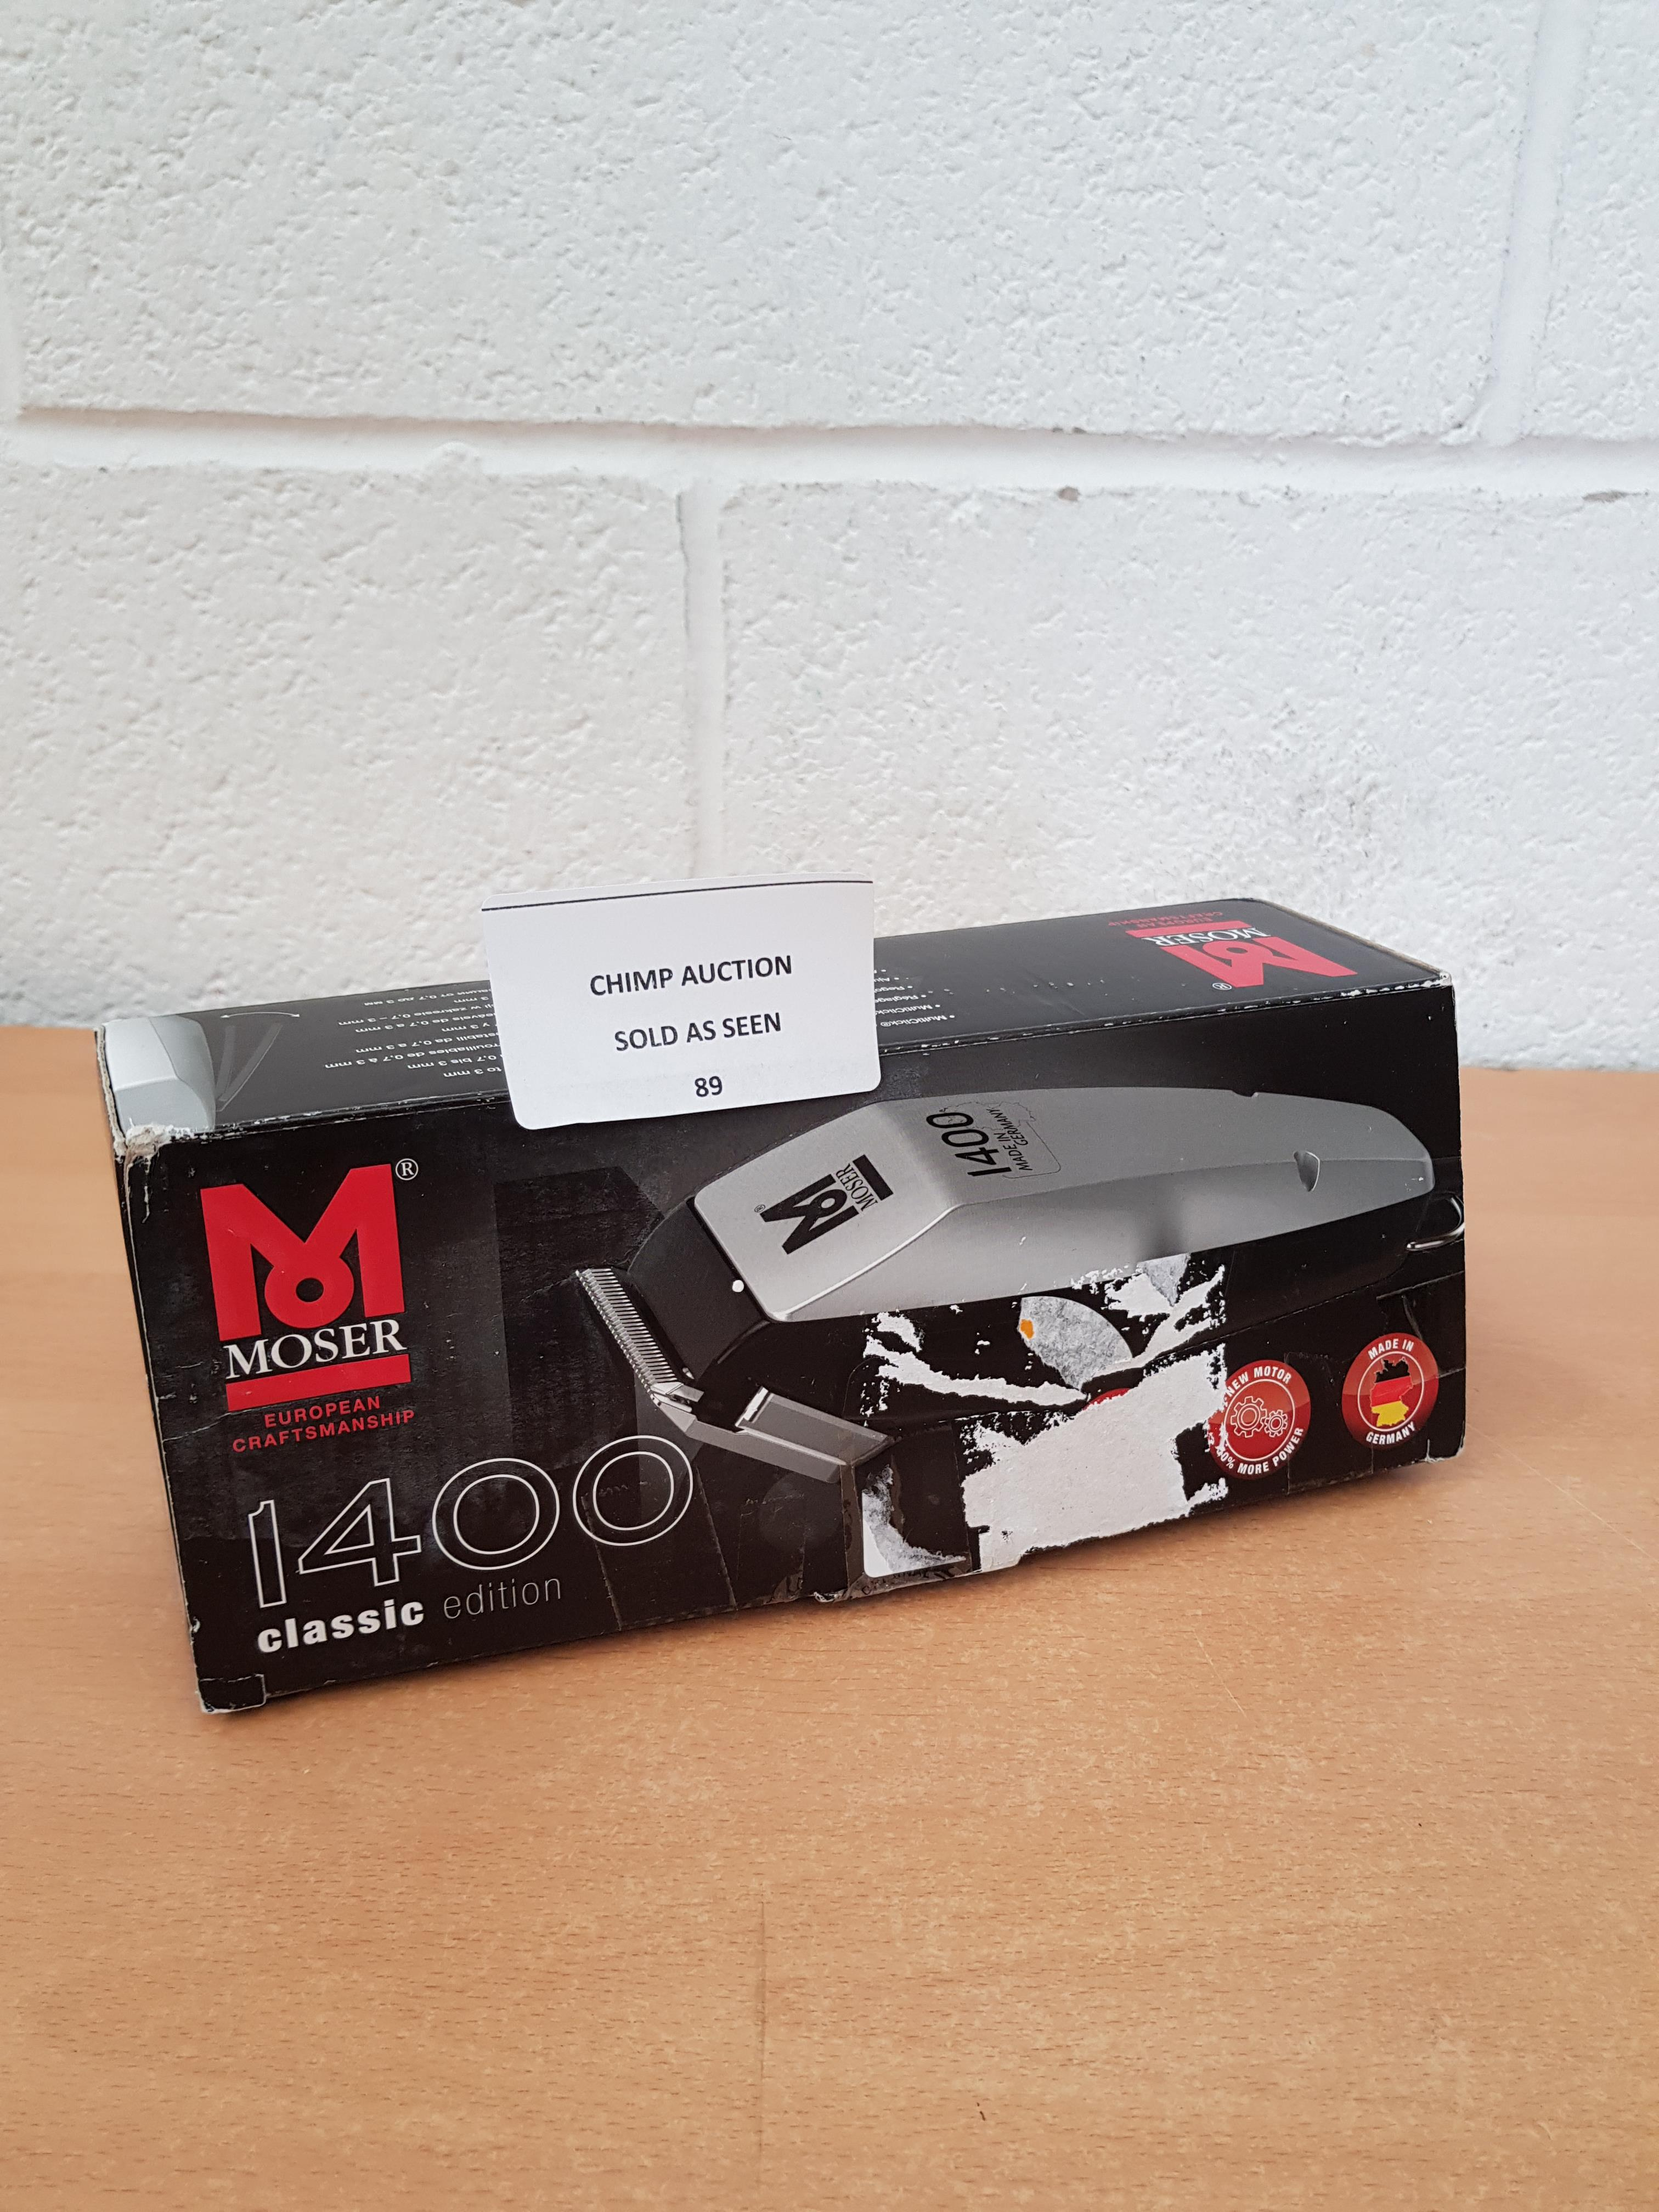 Lot 89 - Moser 1400 Classic Edition Hair trimmer RRP £79.99